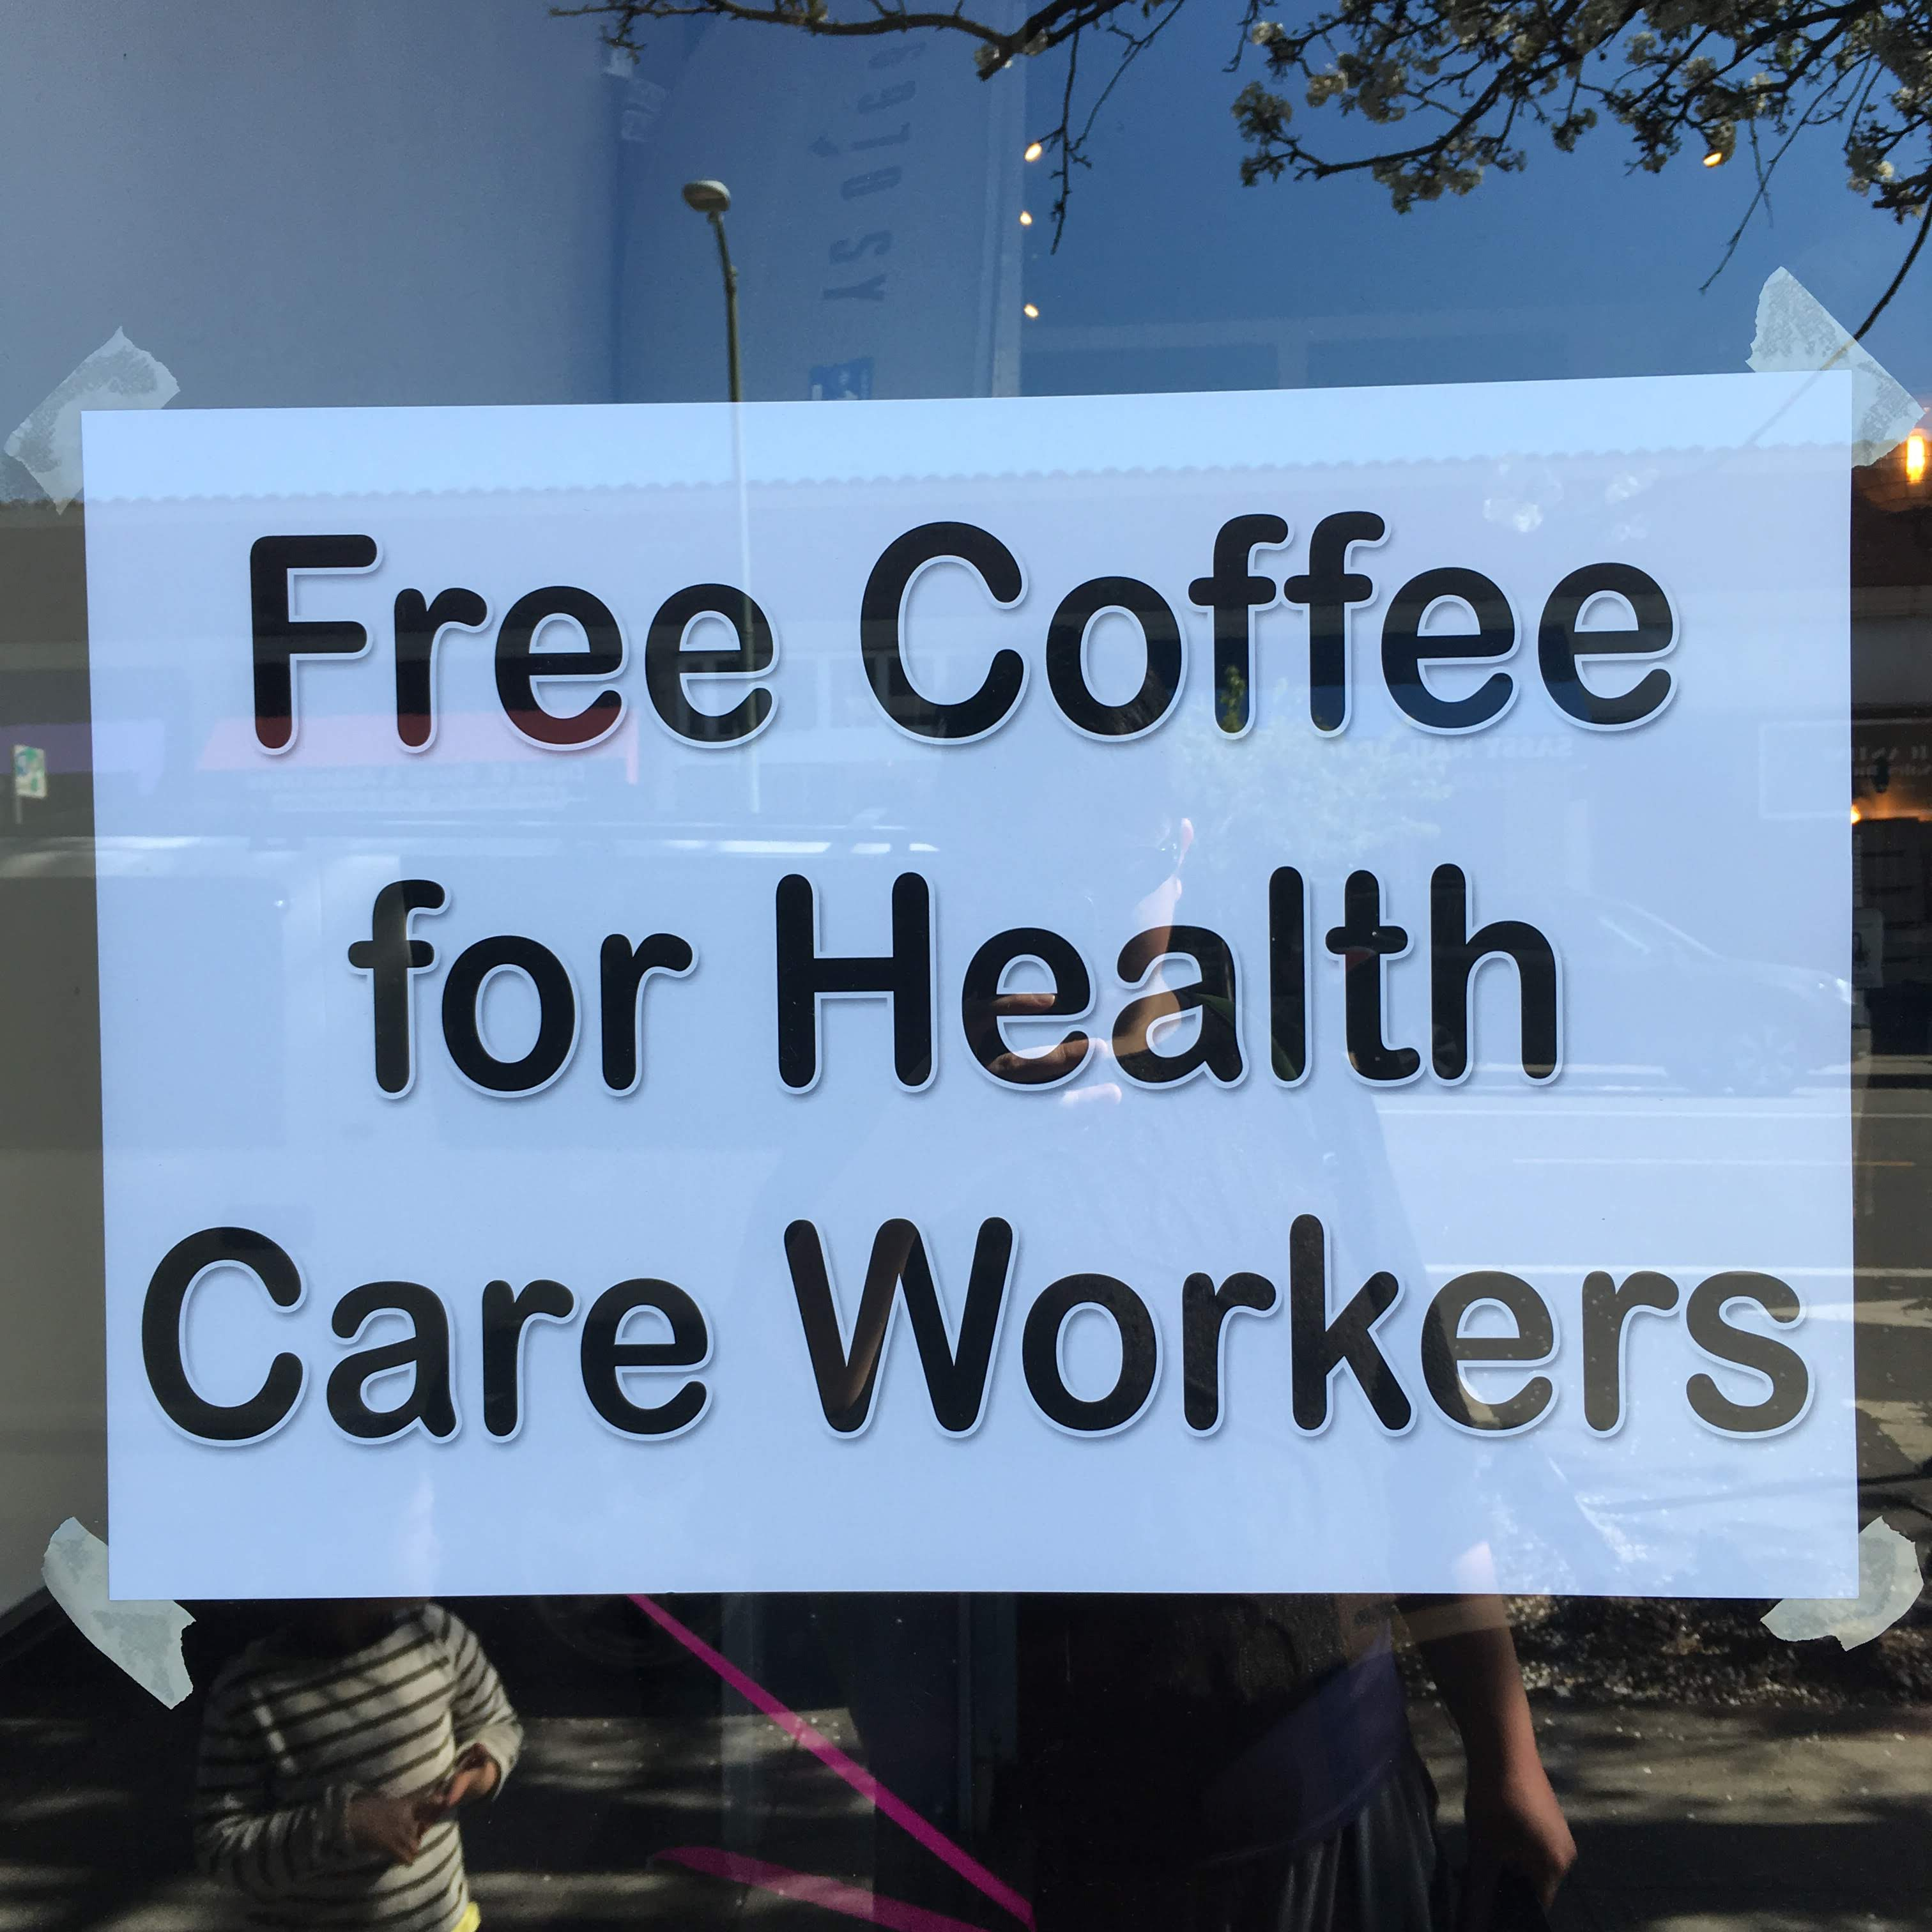 """Typed sign in a cafe window: """"Free Coffee for Health Care Workers"""""""